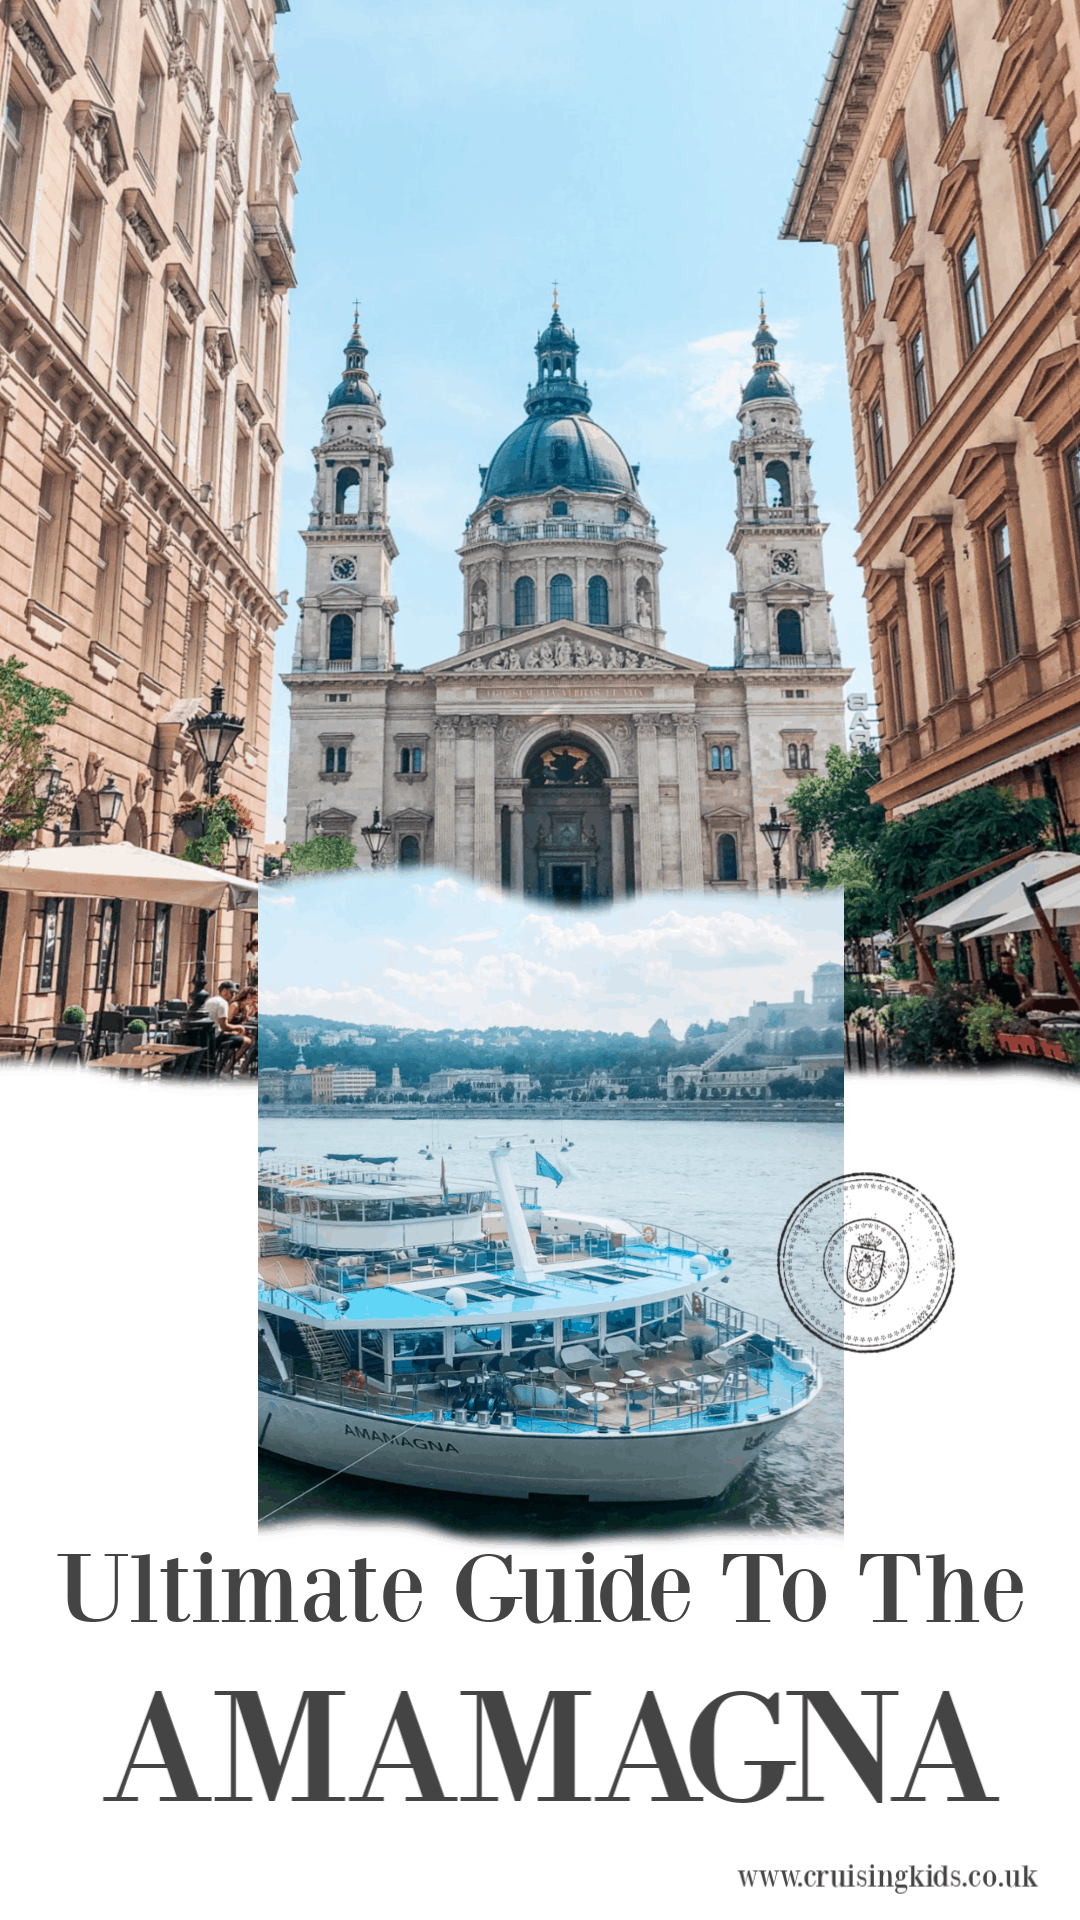 The ultimate guide to the AmaMagna River Cruise Ship, currently the widest river cruise ship on the Danube